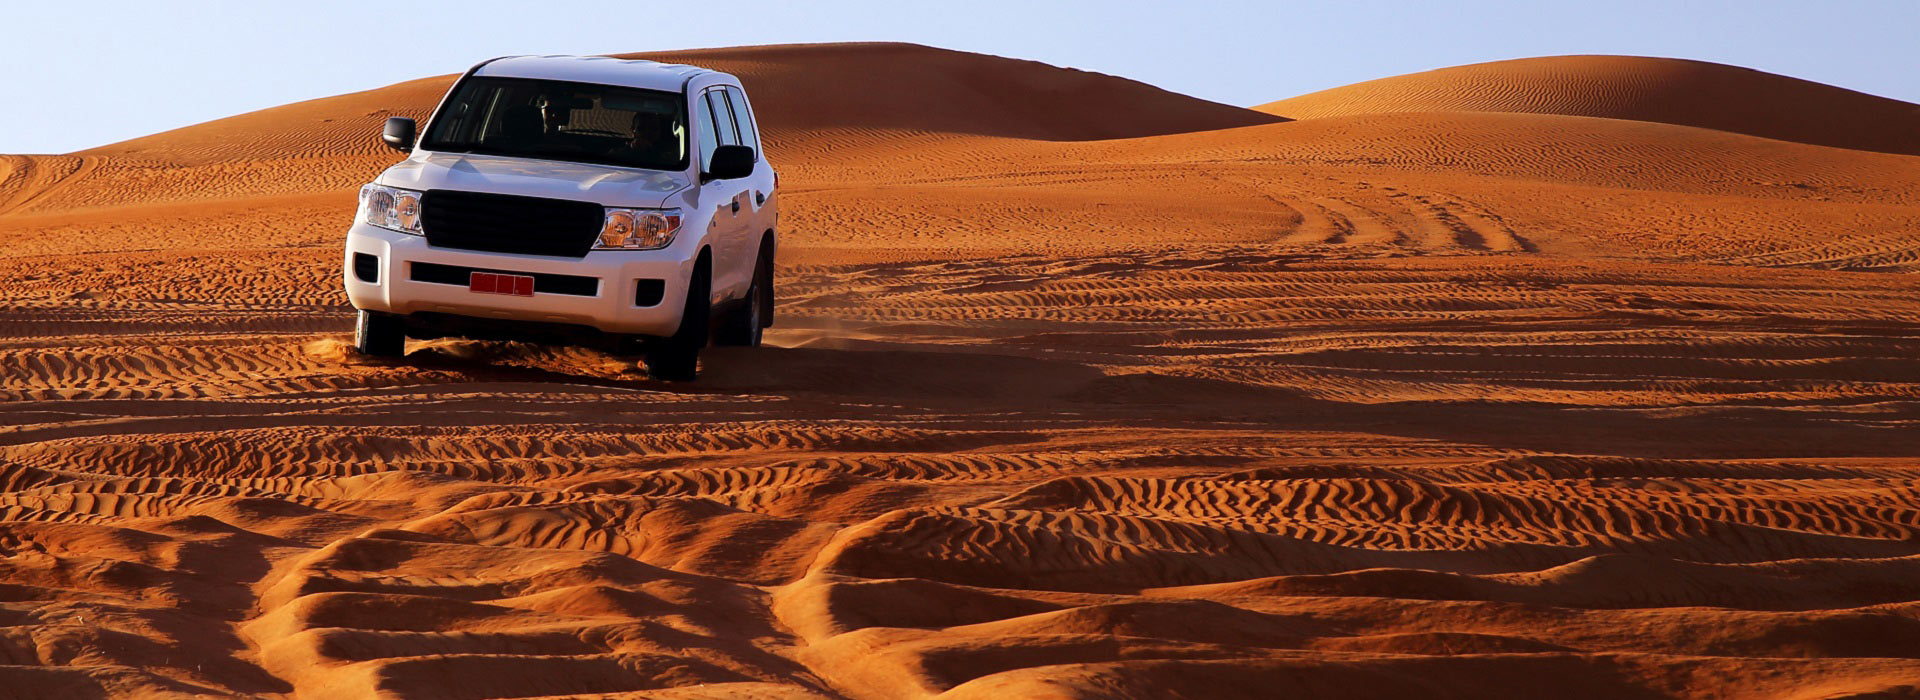 off_road_sand_dunes